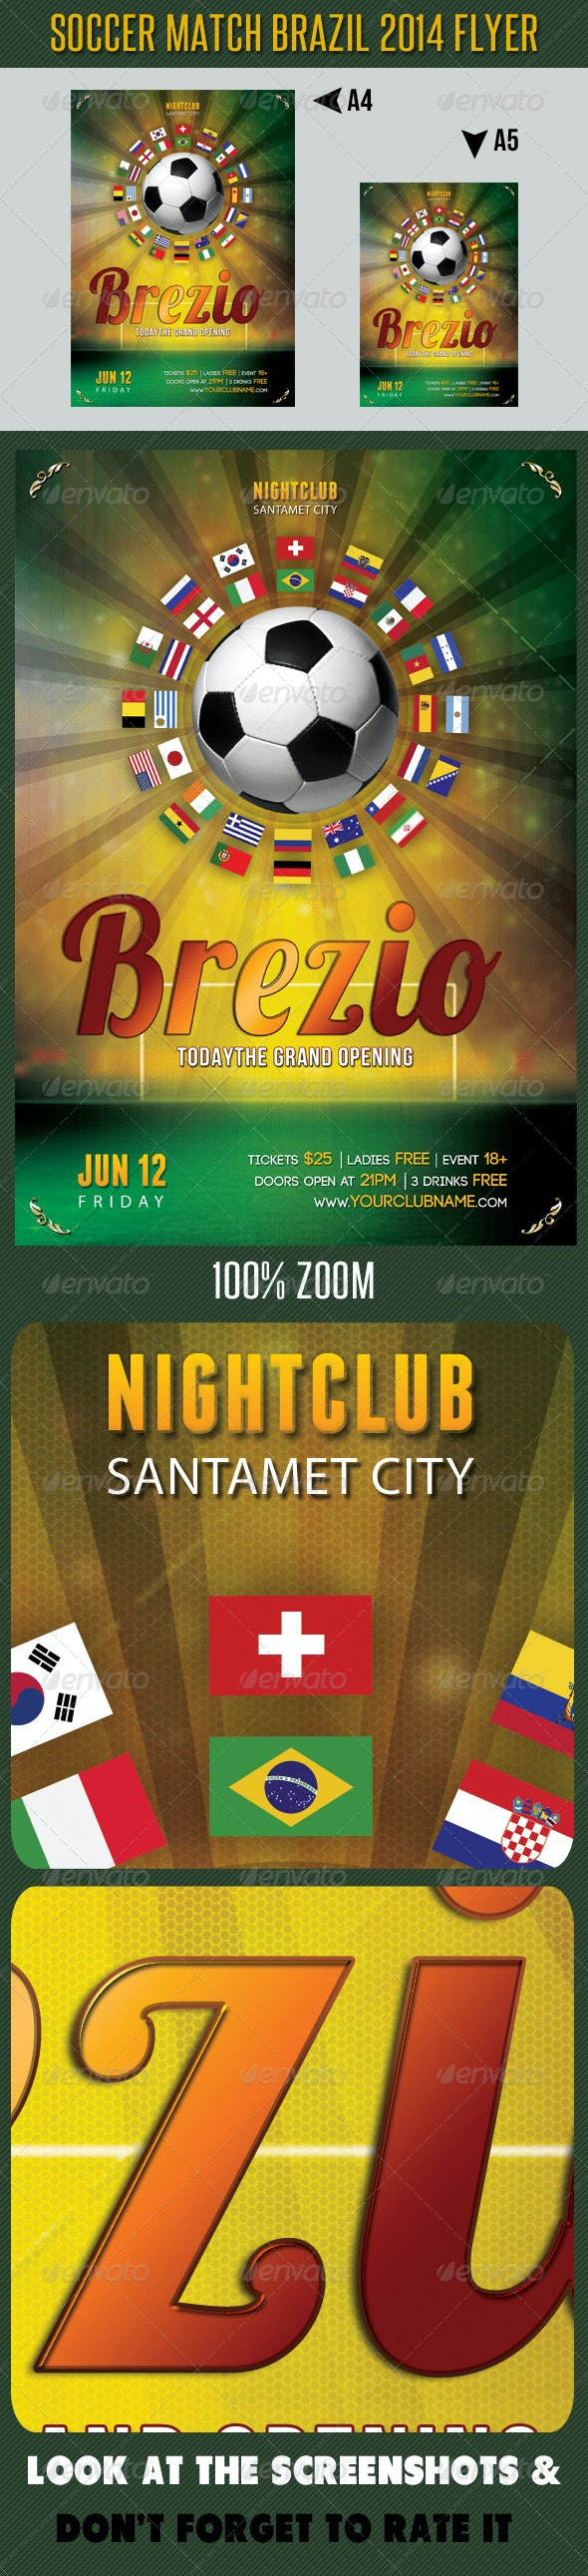 Soccer Tournament 2014 Flyer Template - Sports Events